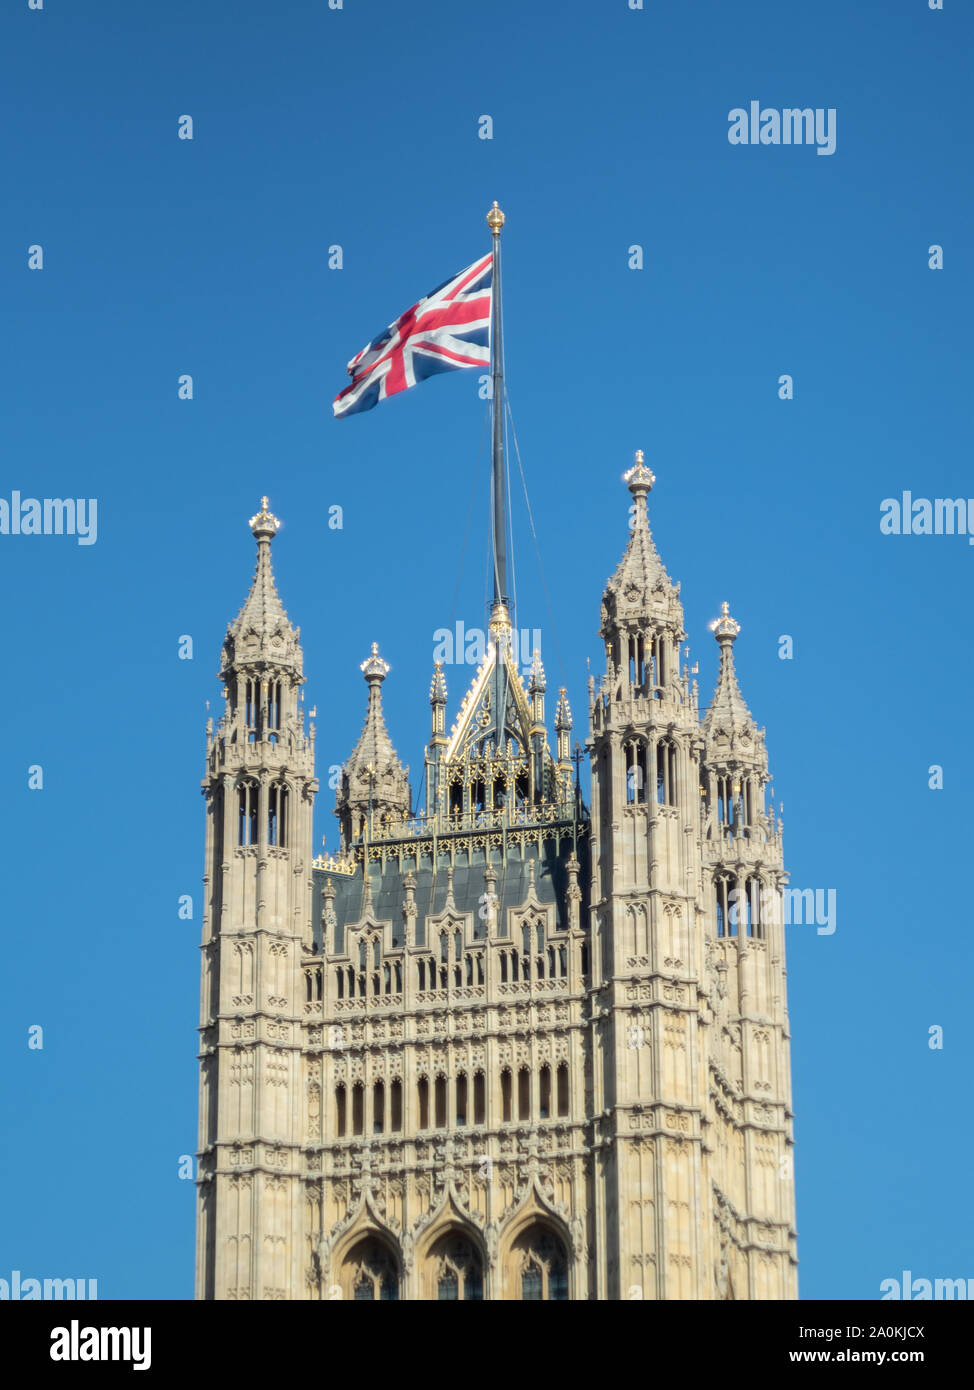 LONDON, UK - SEPTEMBER 20 2019: Union Jack flag flying over the Houses of Parliament against a blue sky, Westminster, London Stock Photo